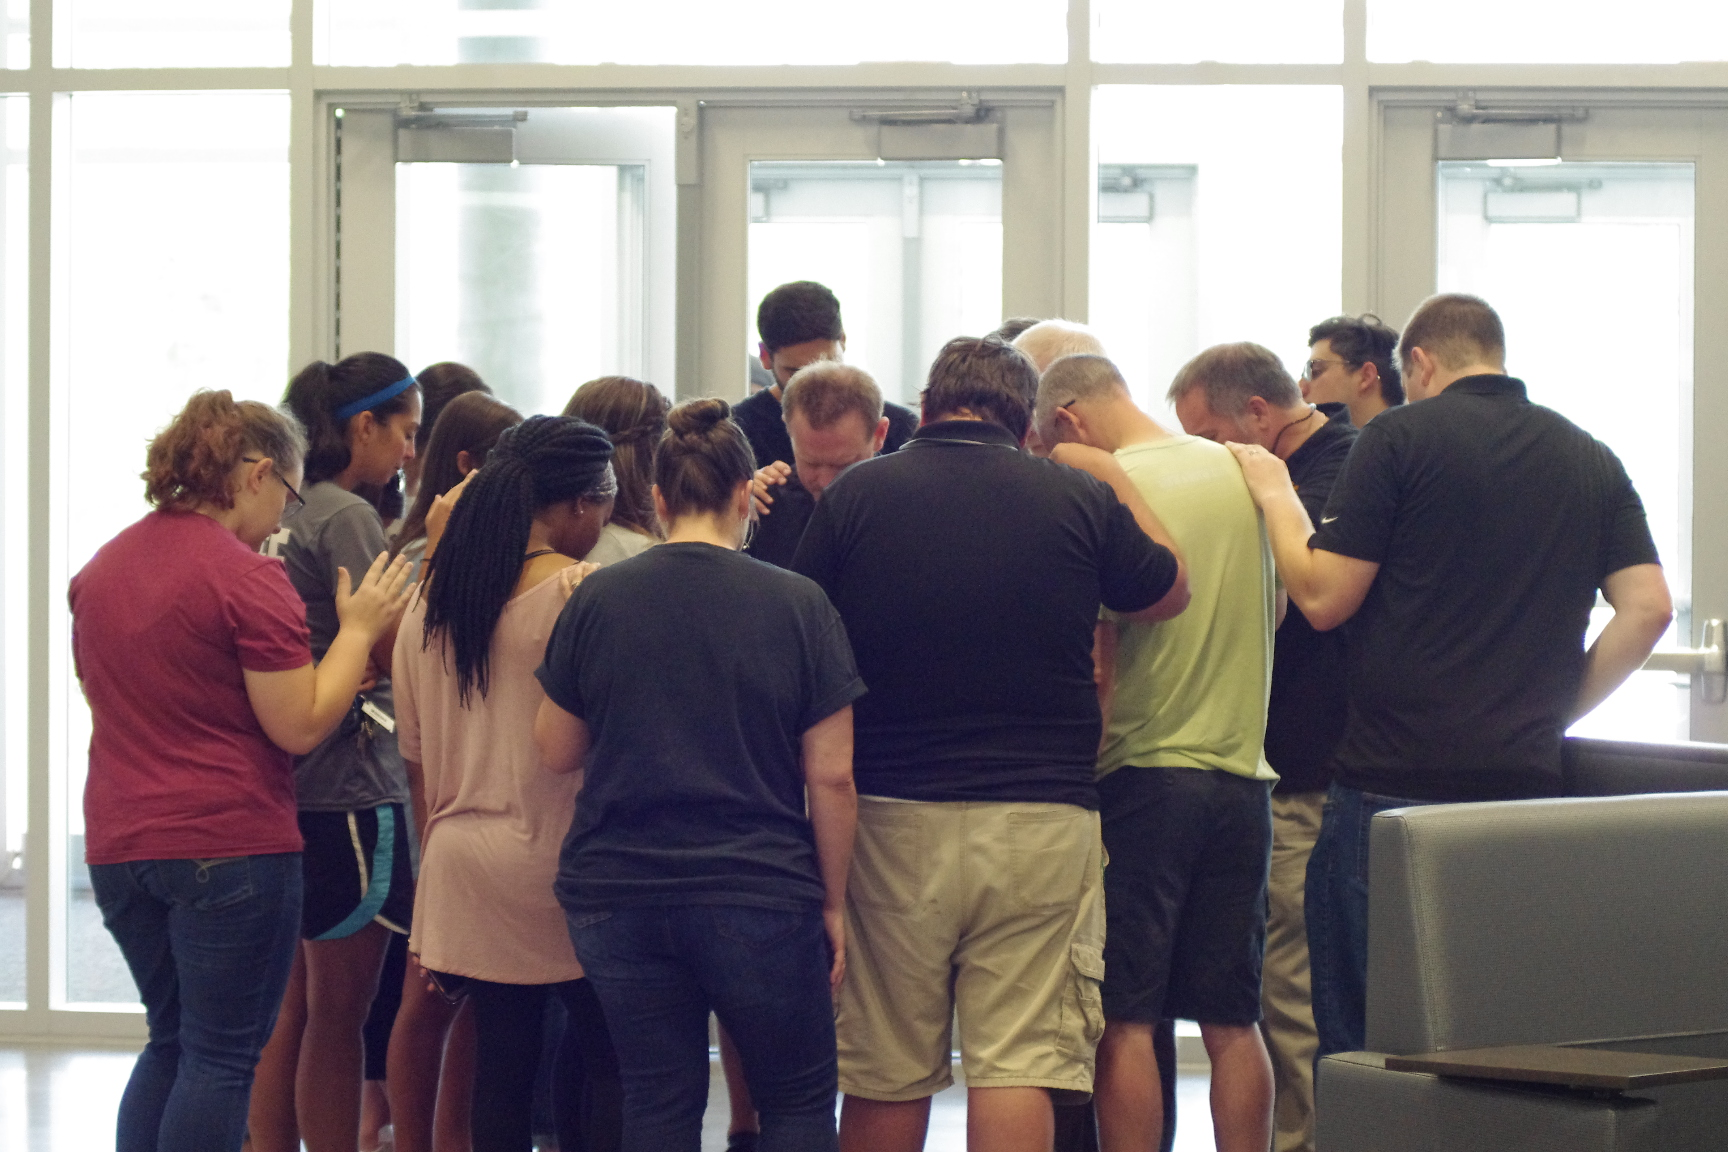 PHOTOS: Local church leaders gather at Battle Creek Middle to pray for students ahead of school year